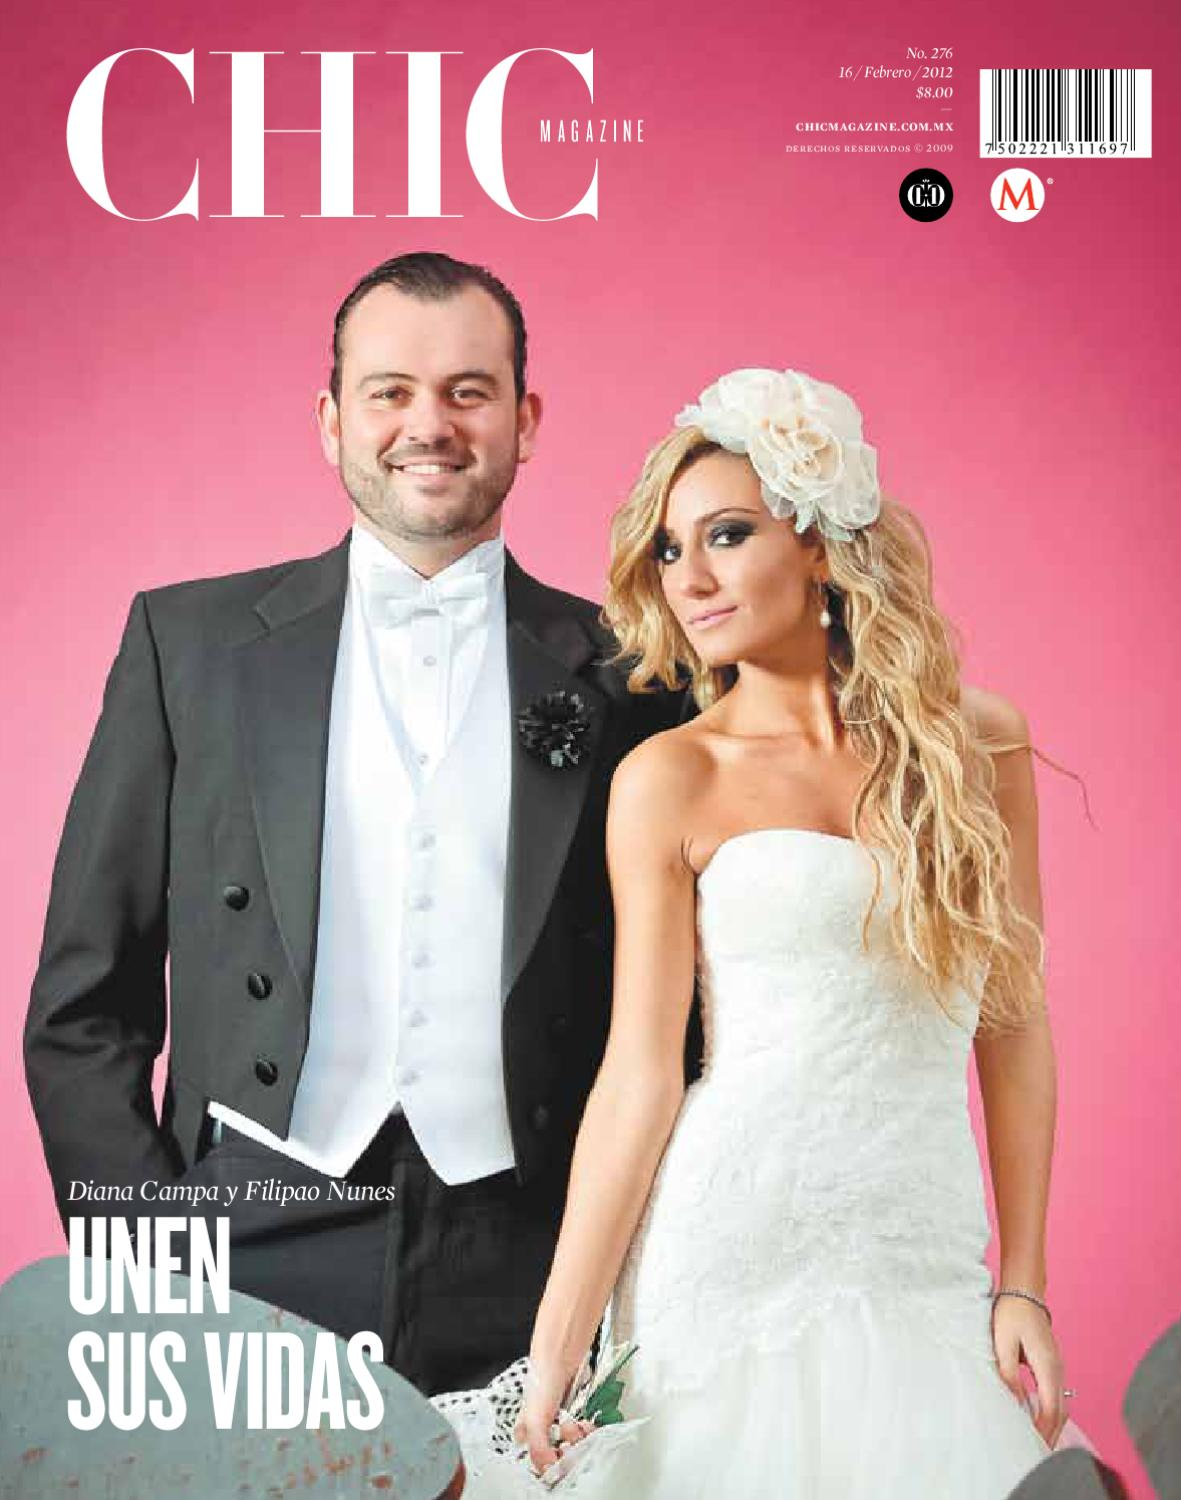 Chic Magazine Monterrey 276 by Chic Magazine Monterrey - issuu